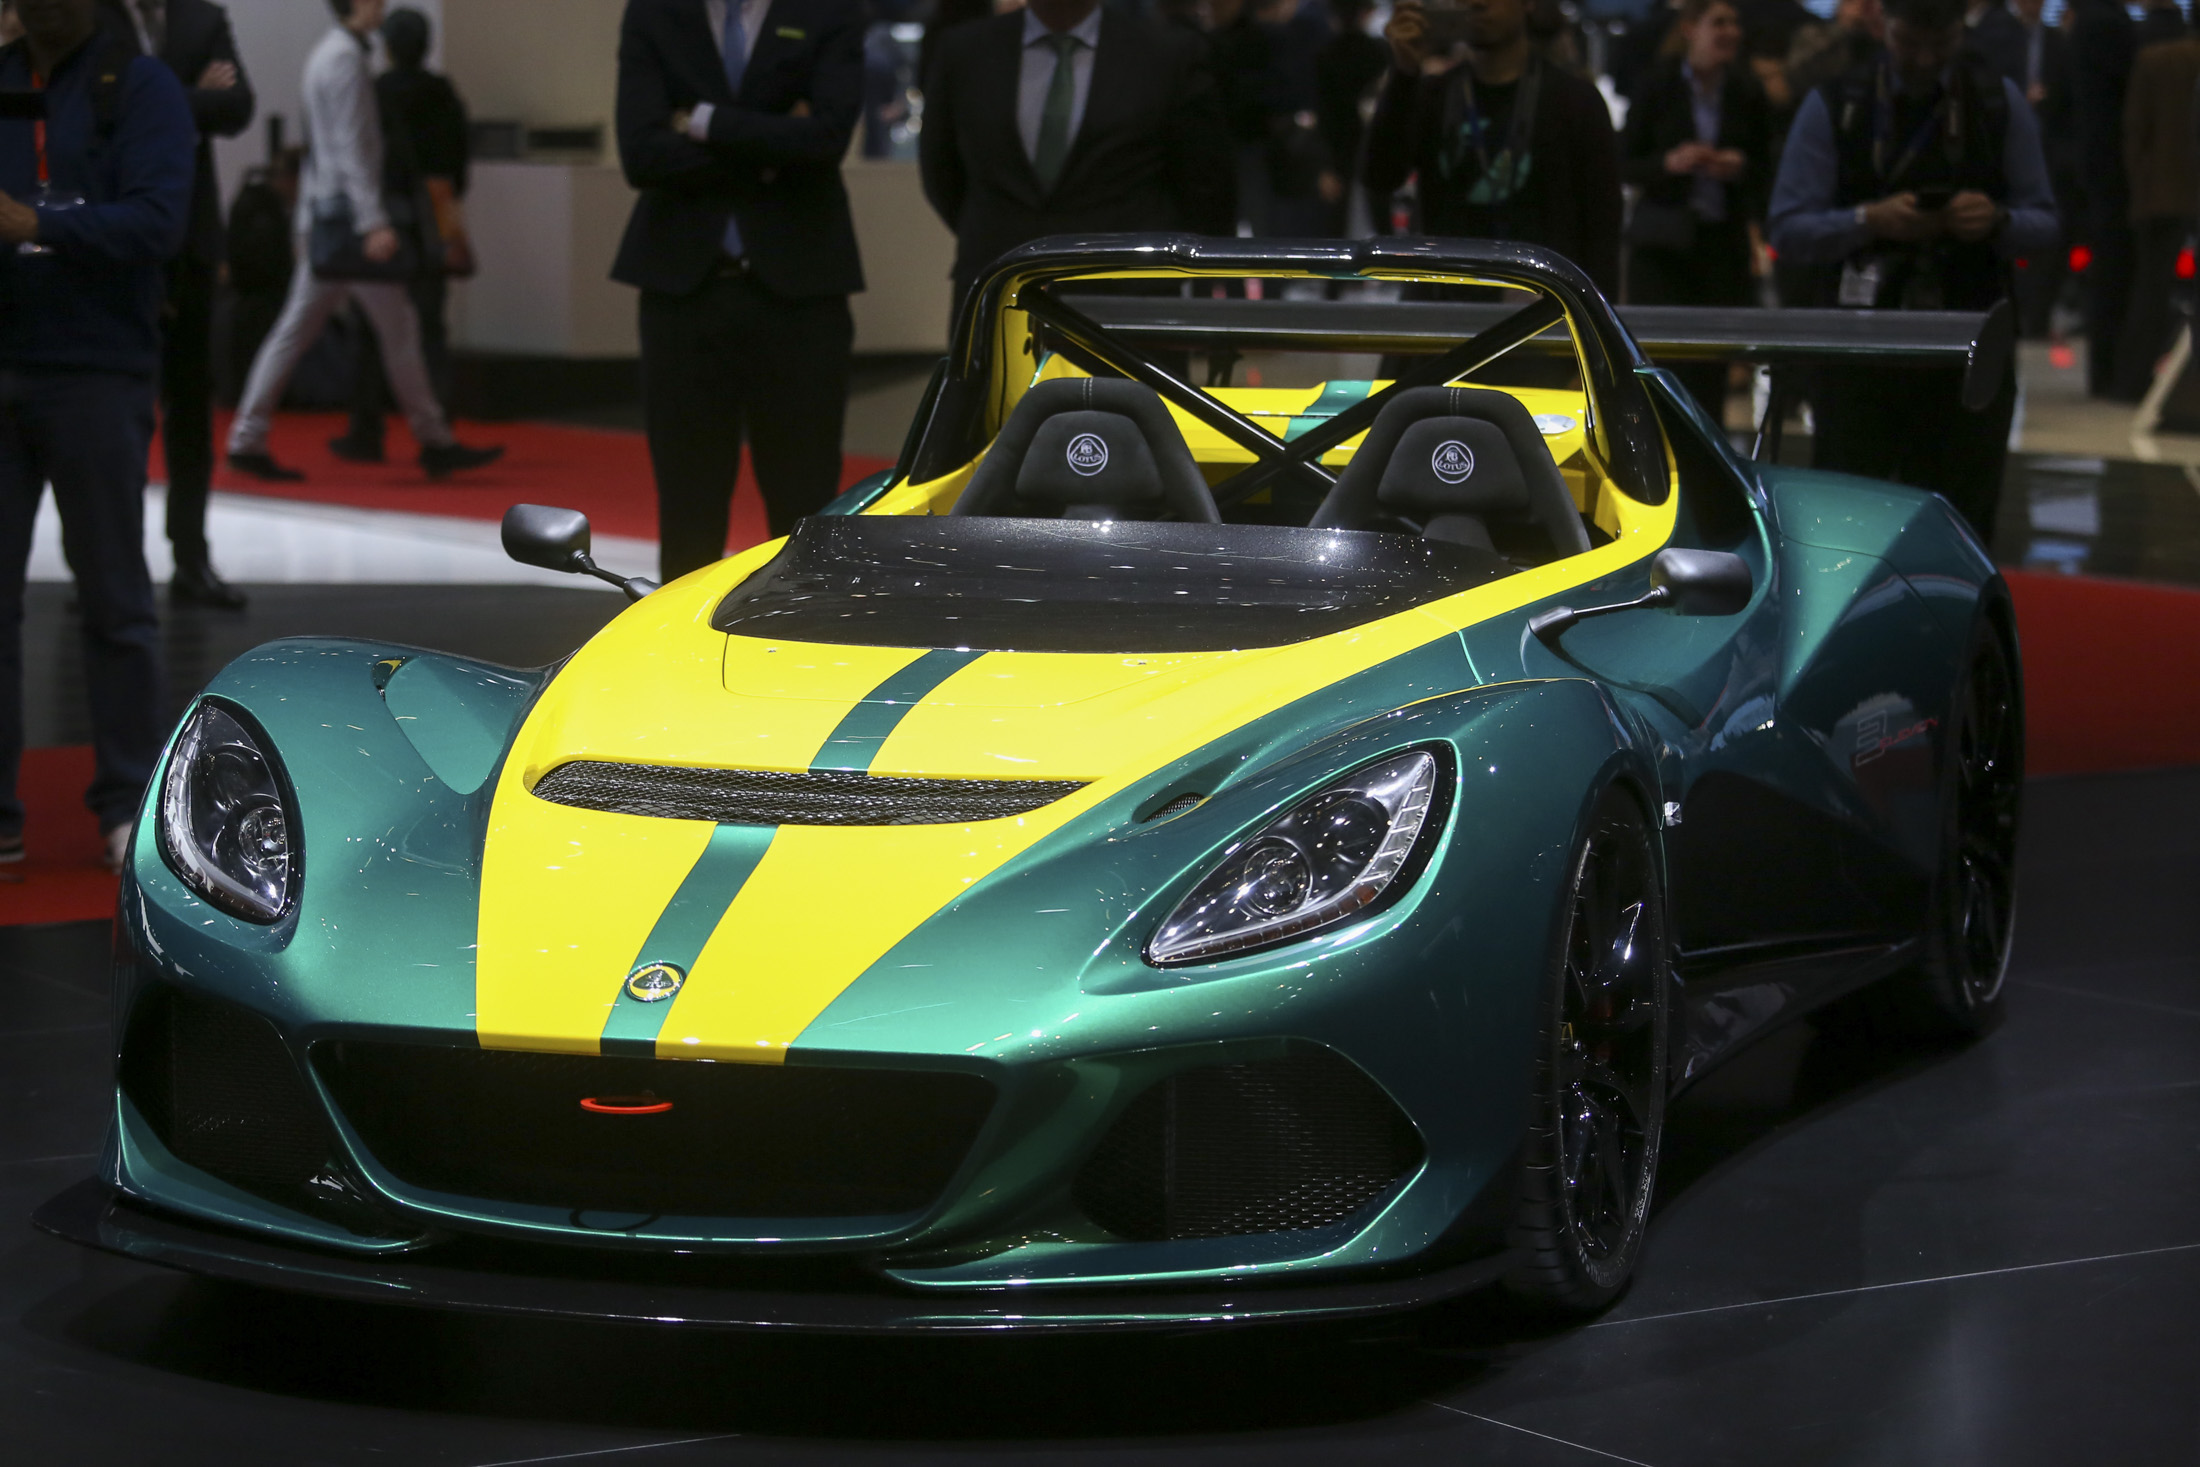 A Lotus Elise 3-11 automobile, produced by Group Lotus Plc, a luxury unit of Proton Holdings Bhd., sits on display on the first day of the 86th Geneva International Motor Show in Geneva, Switzerland, on Tuesday, March 1, 2016. The show opens to the public on March 3, and will showcase the latest models from the world's top automakers. Photographer: Chris Ratcliffe/Bloomberg